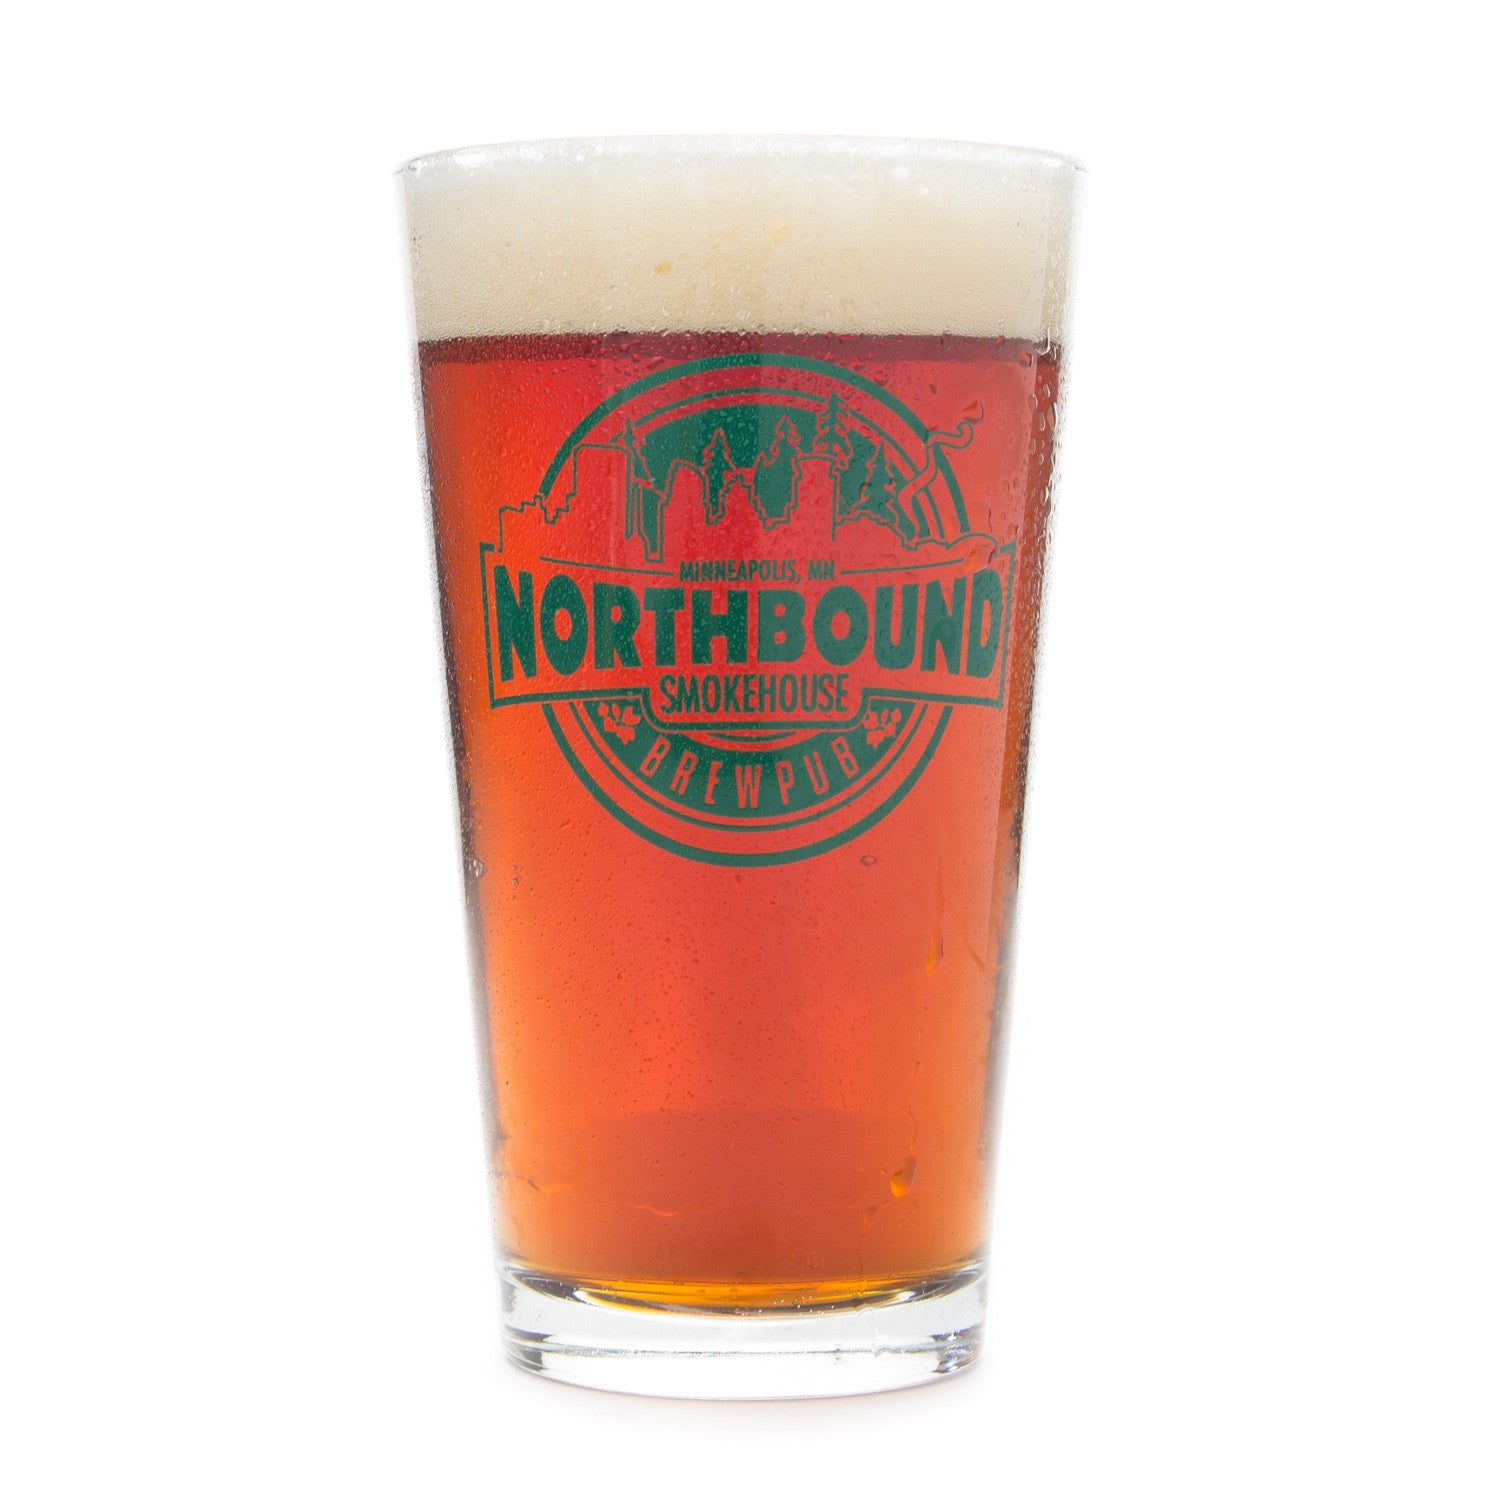 Northbound smokehouse pint glass shaker 57d2efb1 715b 4cf8 a295 d0ce2b82c79b.jpg?v=1469547486